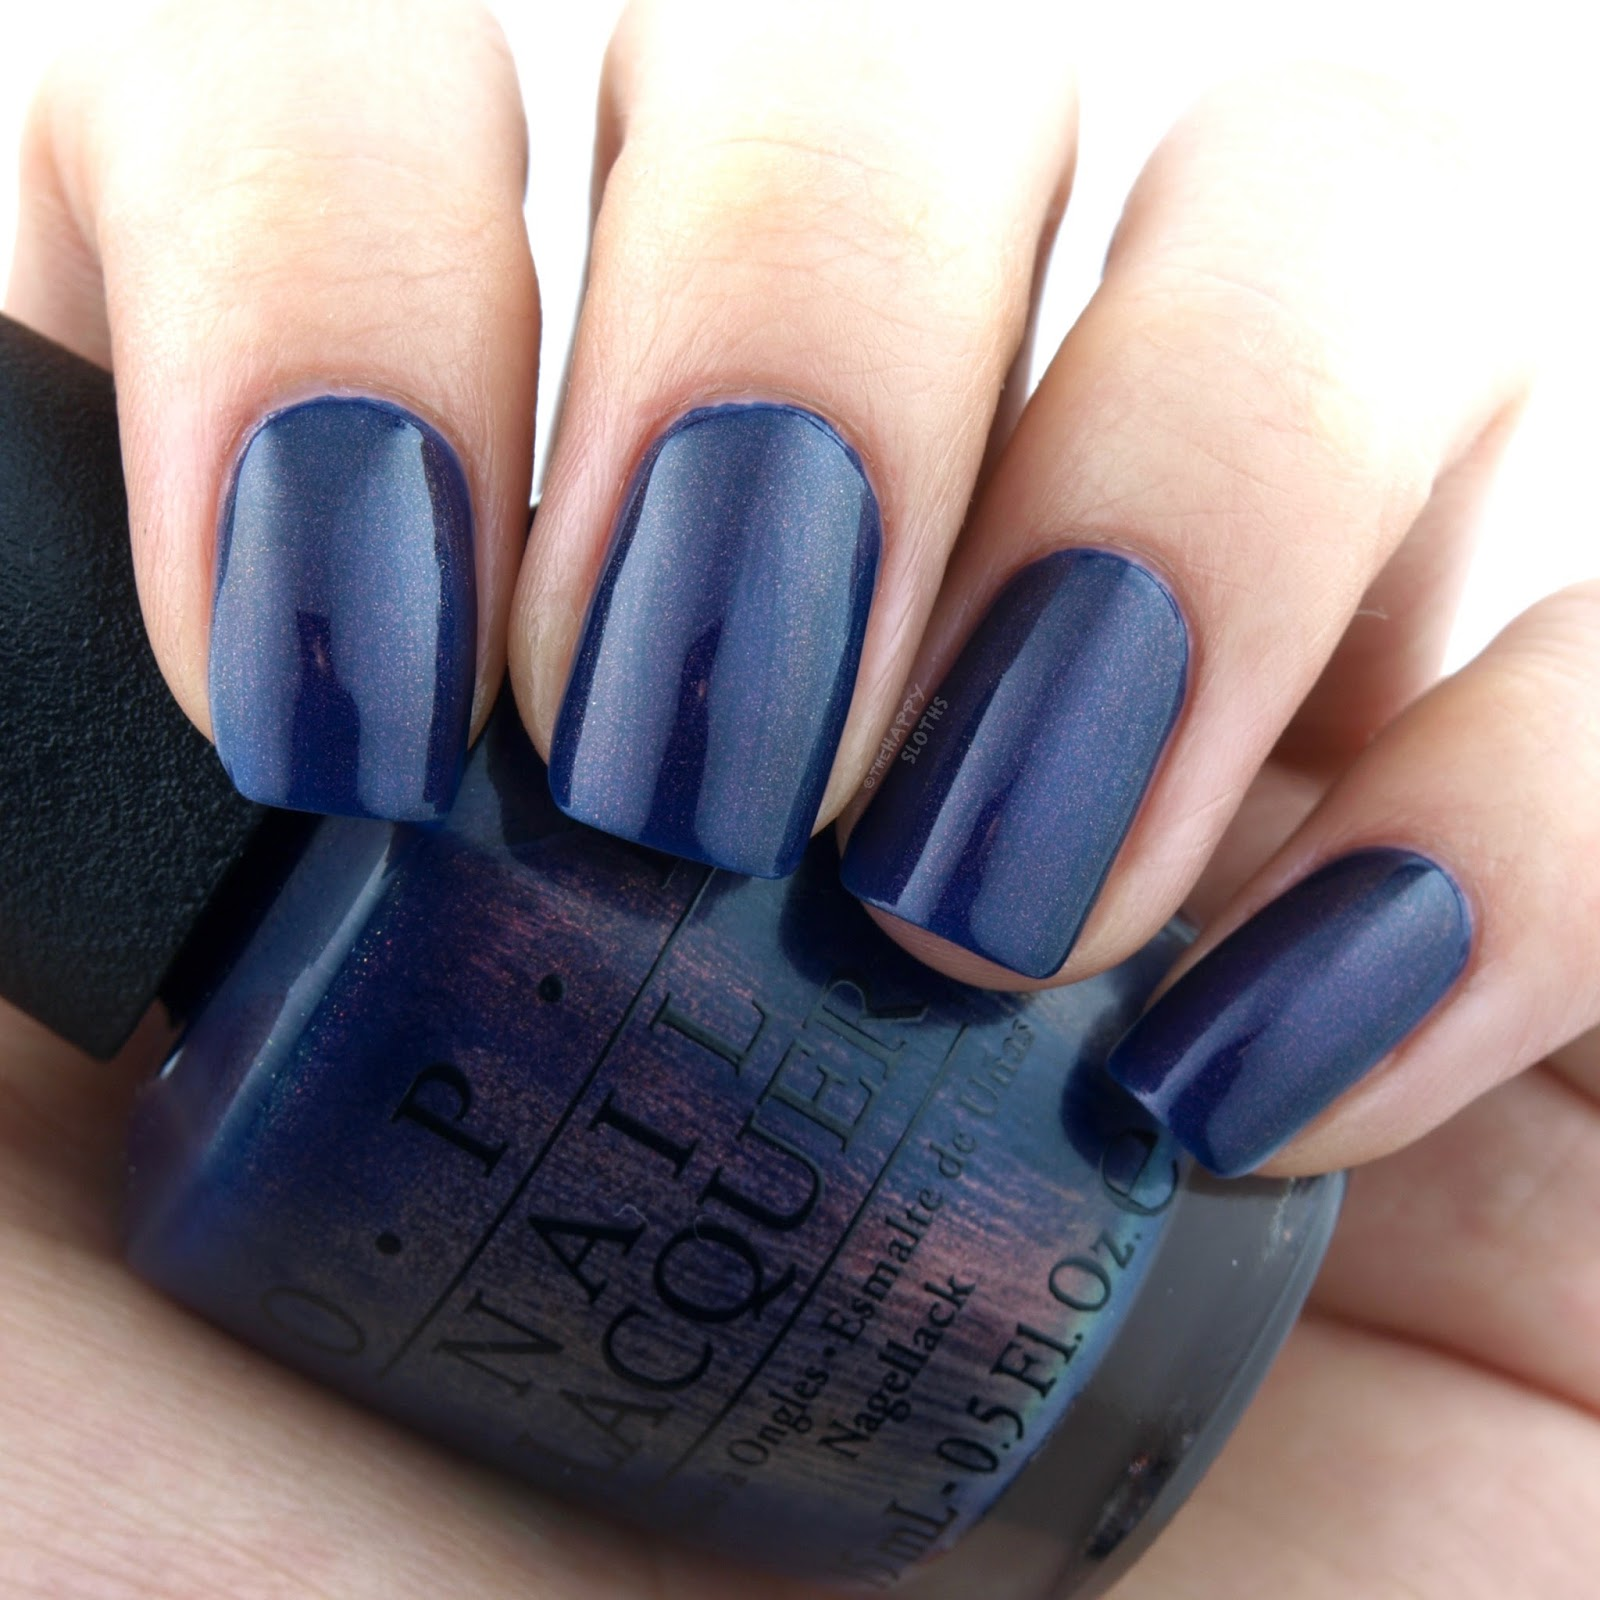 OPI Fall 2017 Iceland Collection | Turn On the Northern Lights!: Review and Swatches